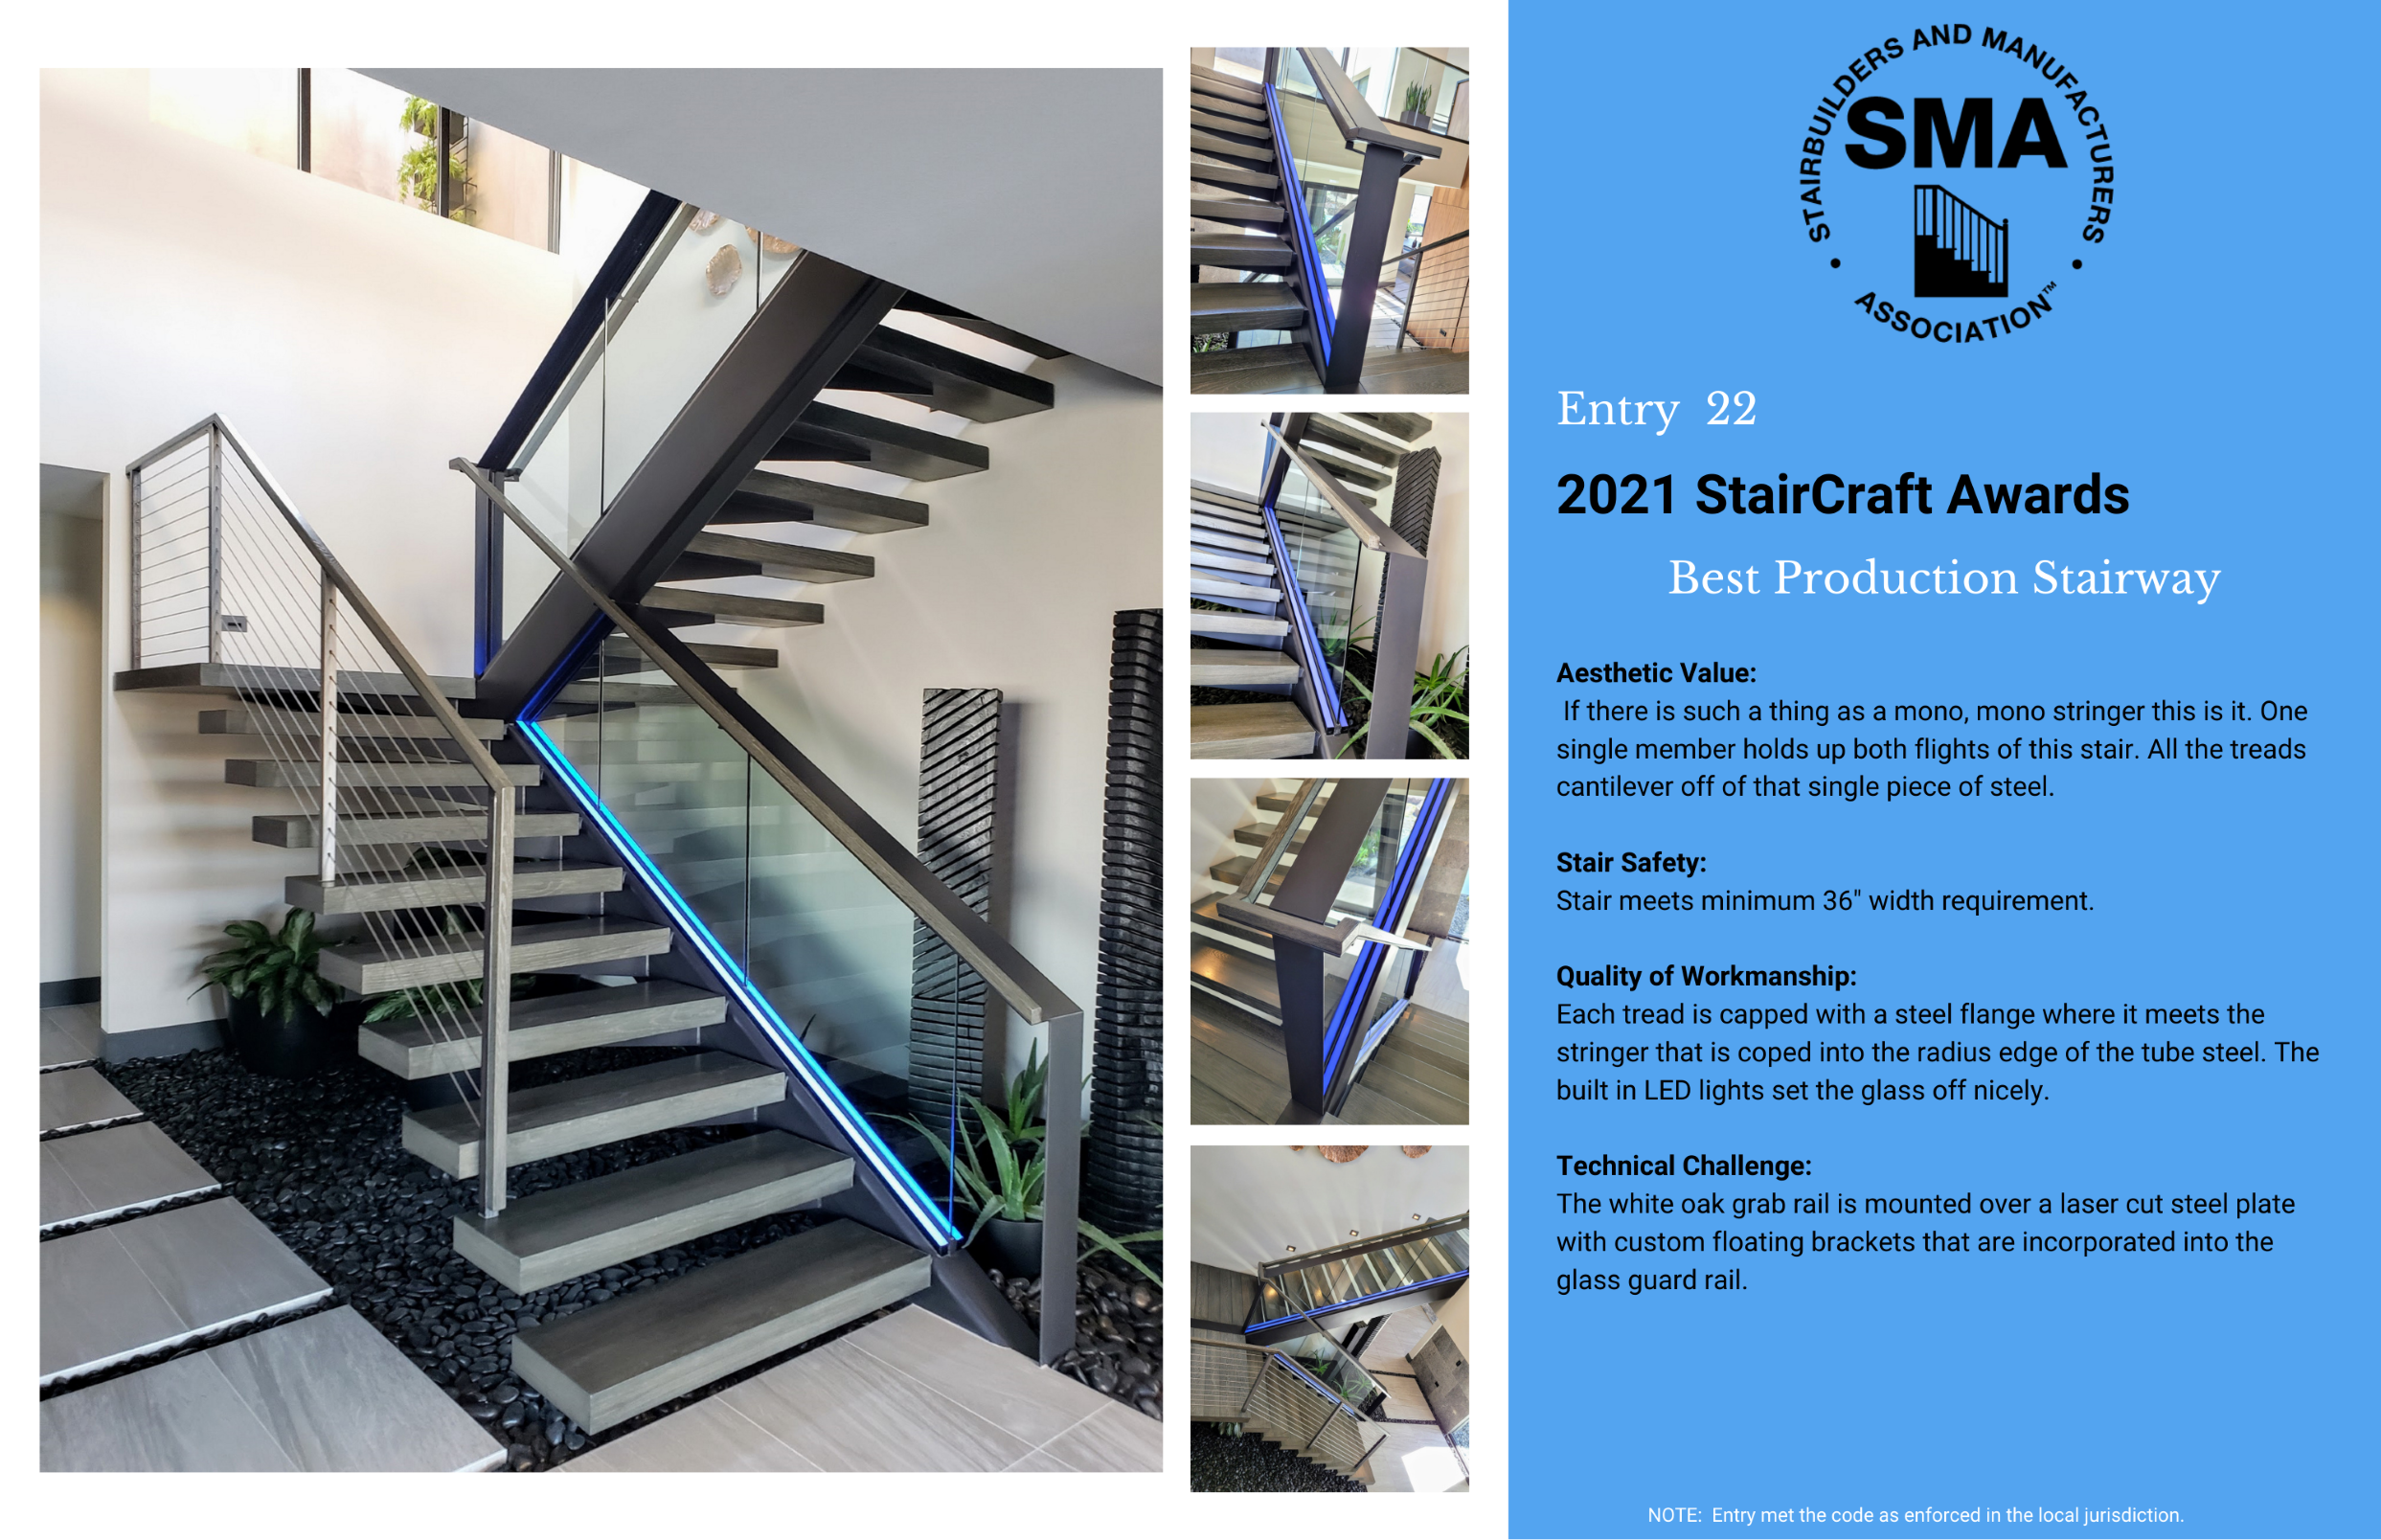 2021 StairCraft Awards Entry 22